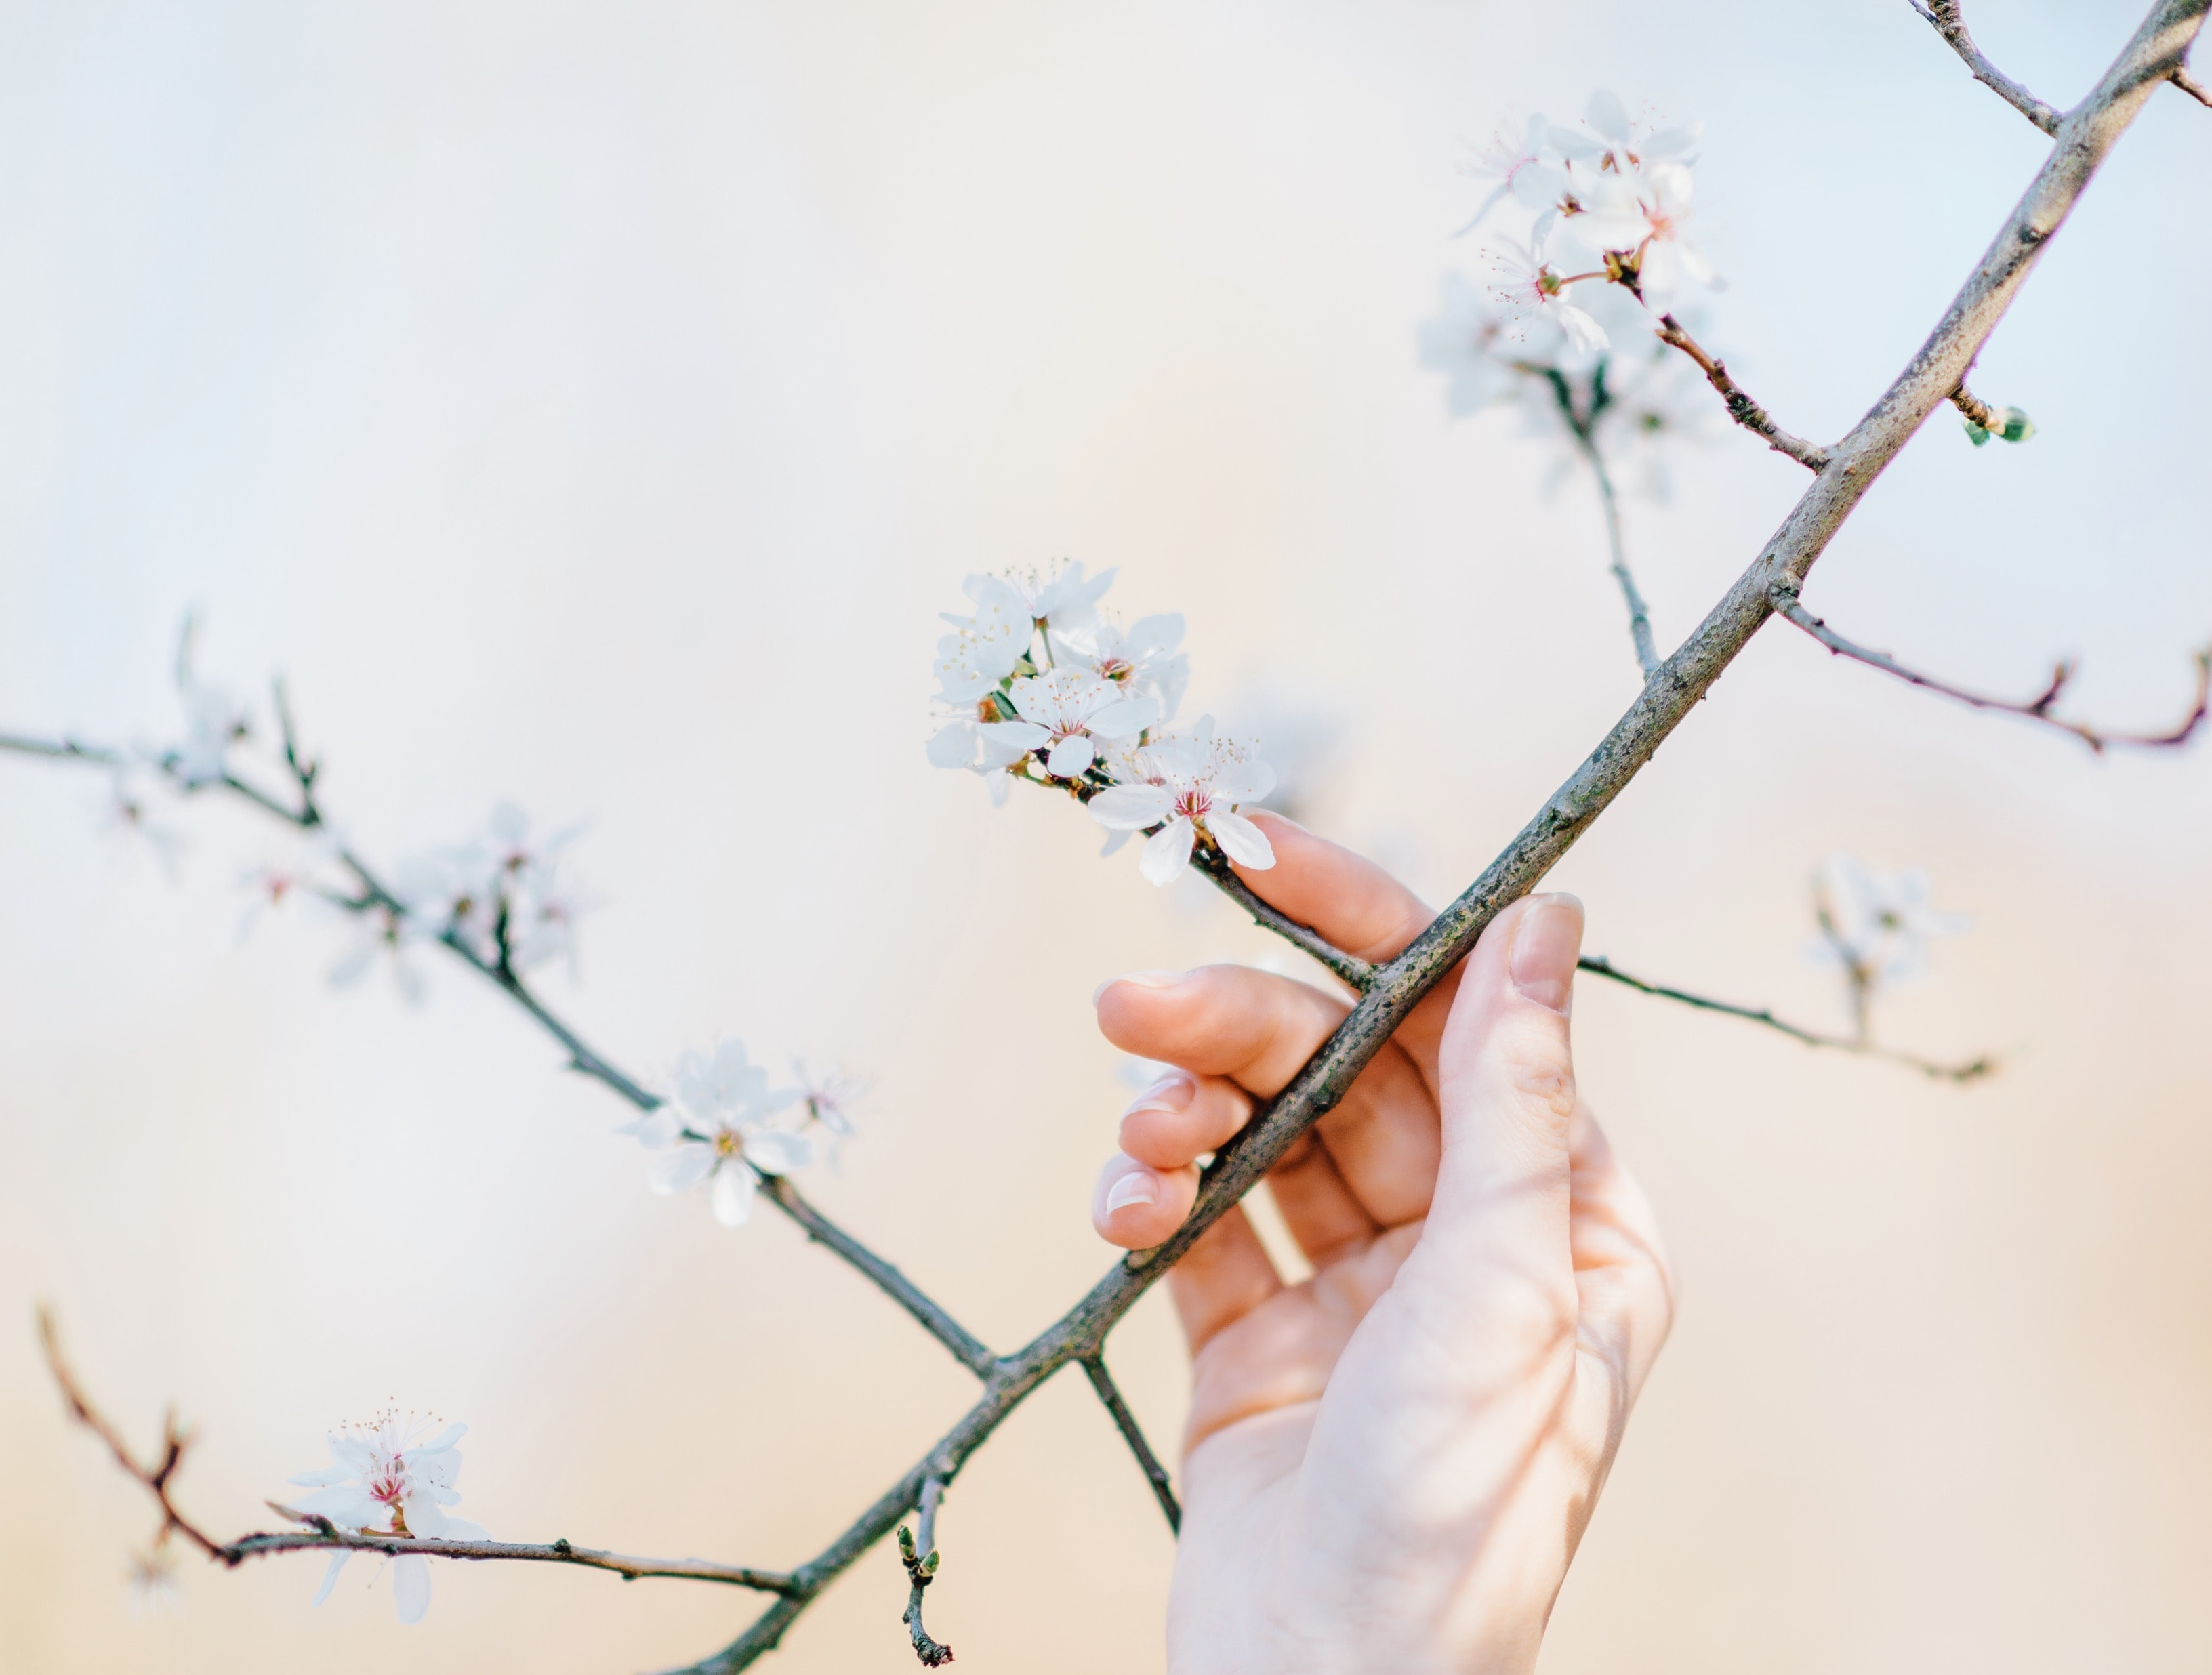 Almond twig with blossom, flower and person's hand in Spring, Volkspark Prenzlauer Berg